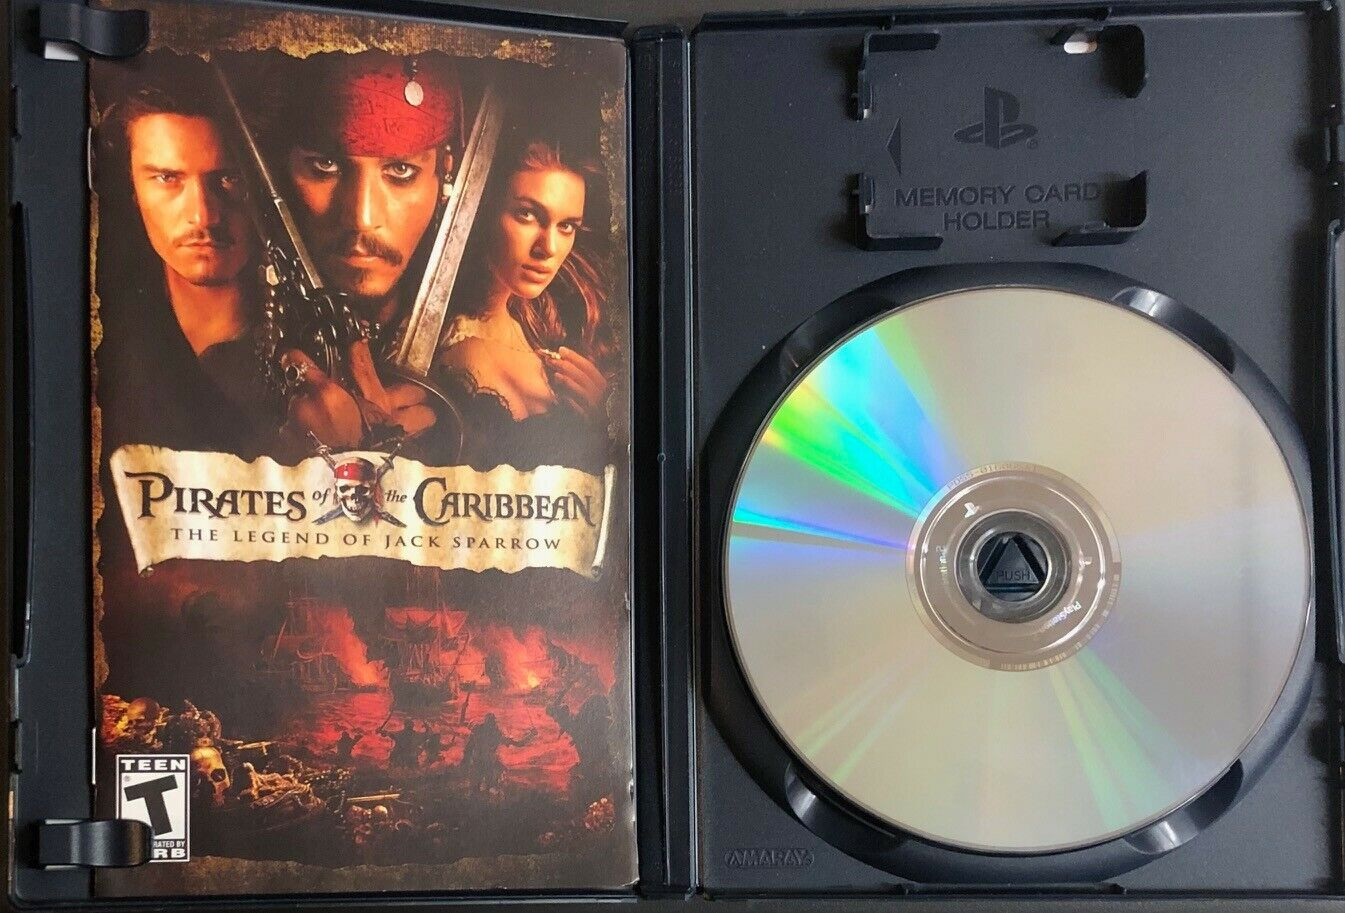 Pirates Of The Caribbean The Legend Of Jack Sparrow - PS2 Greatest Hits - $7.95